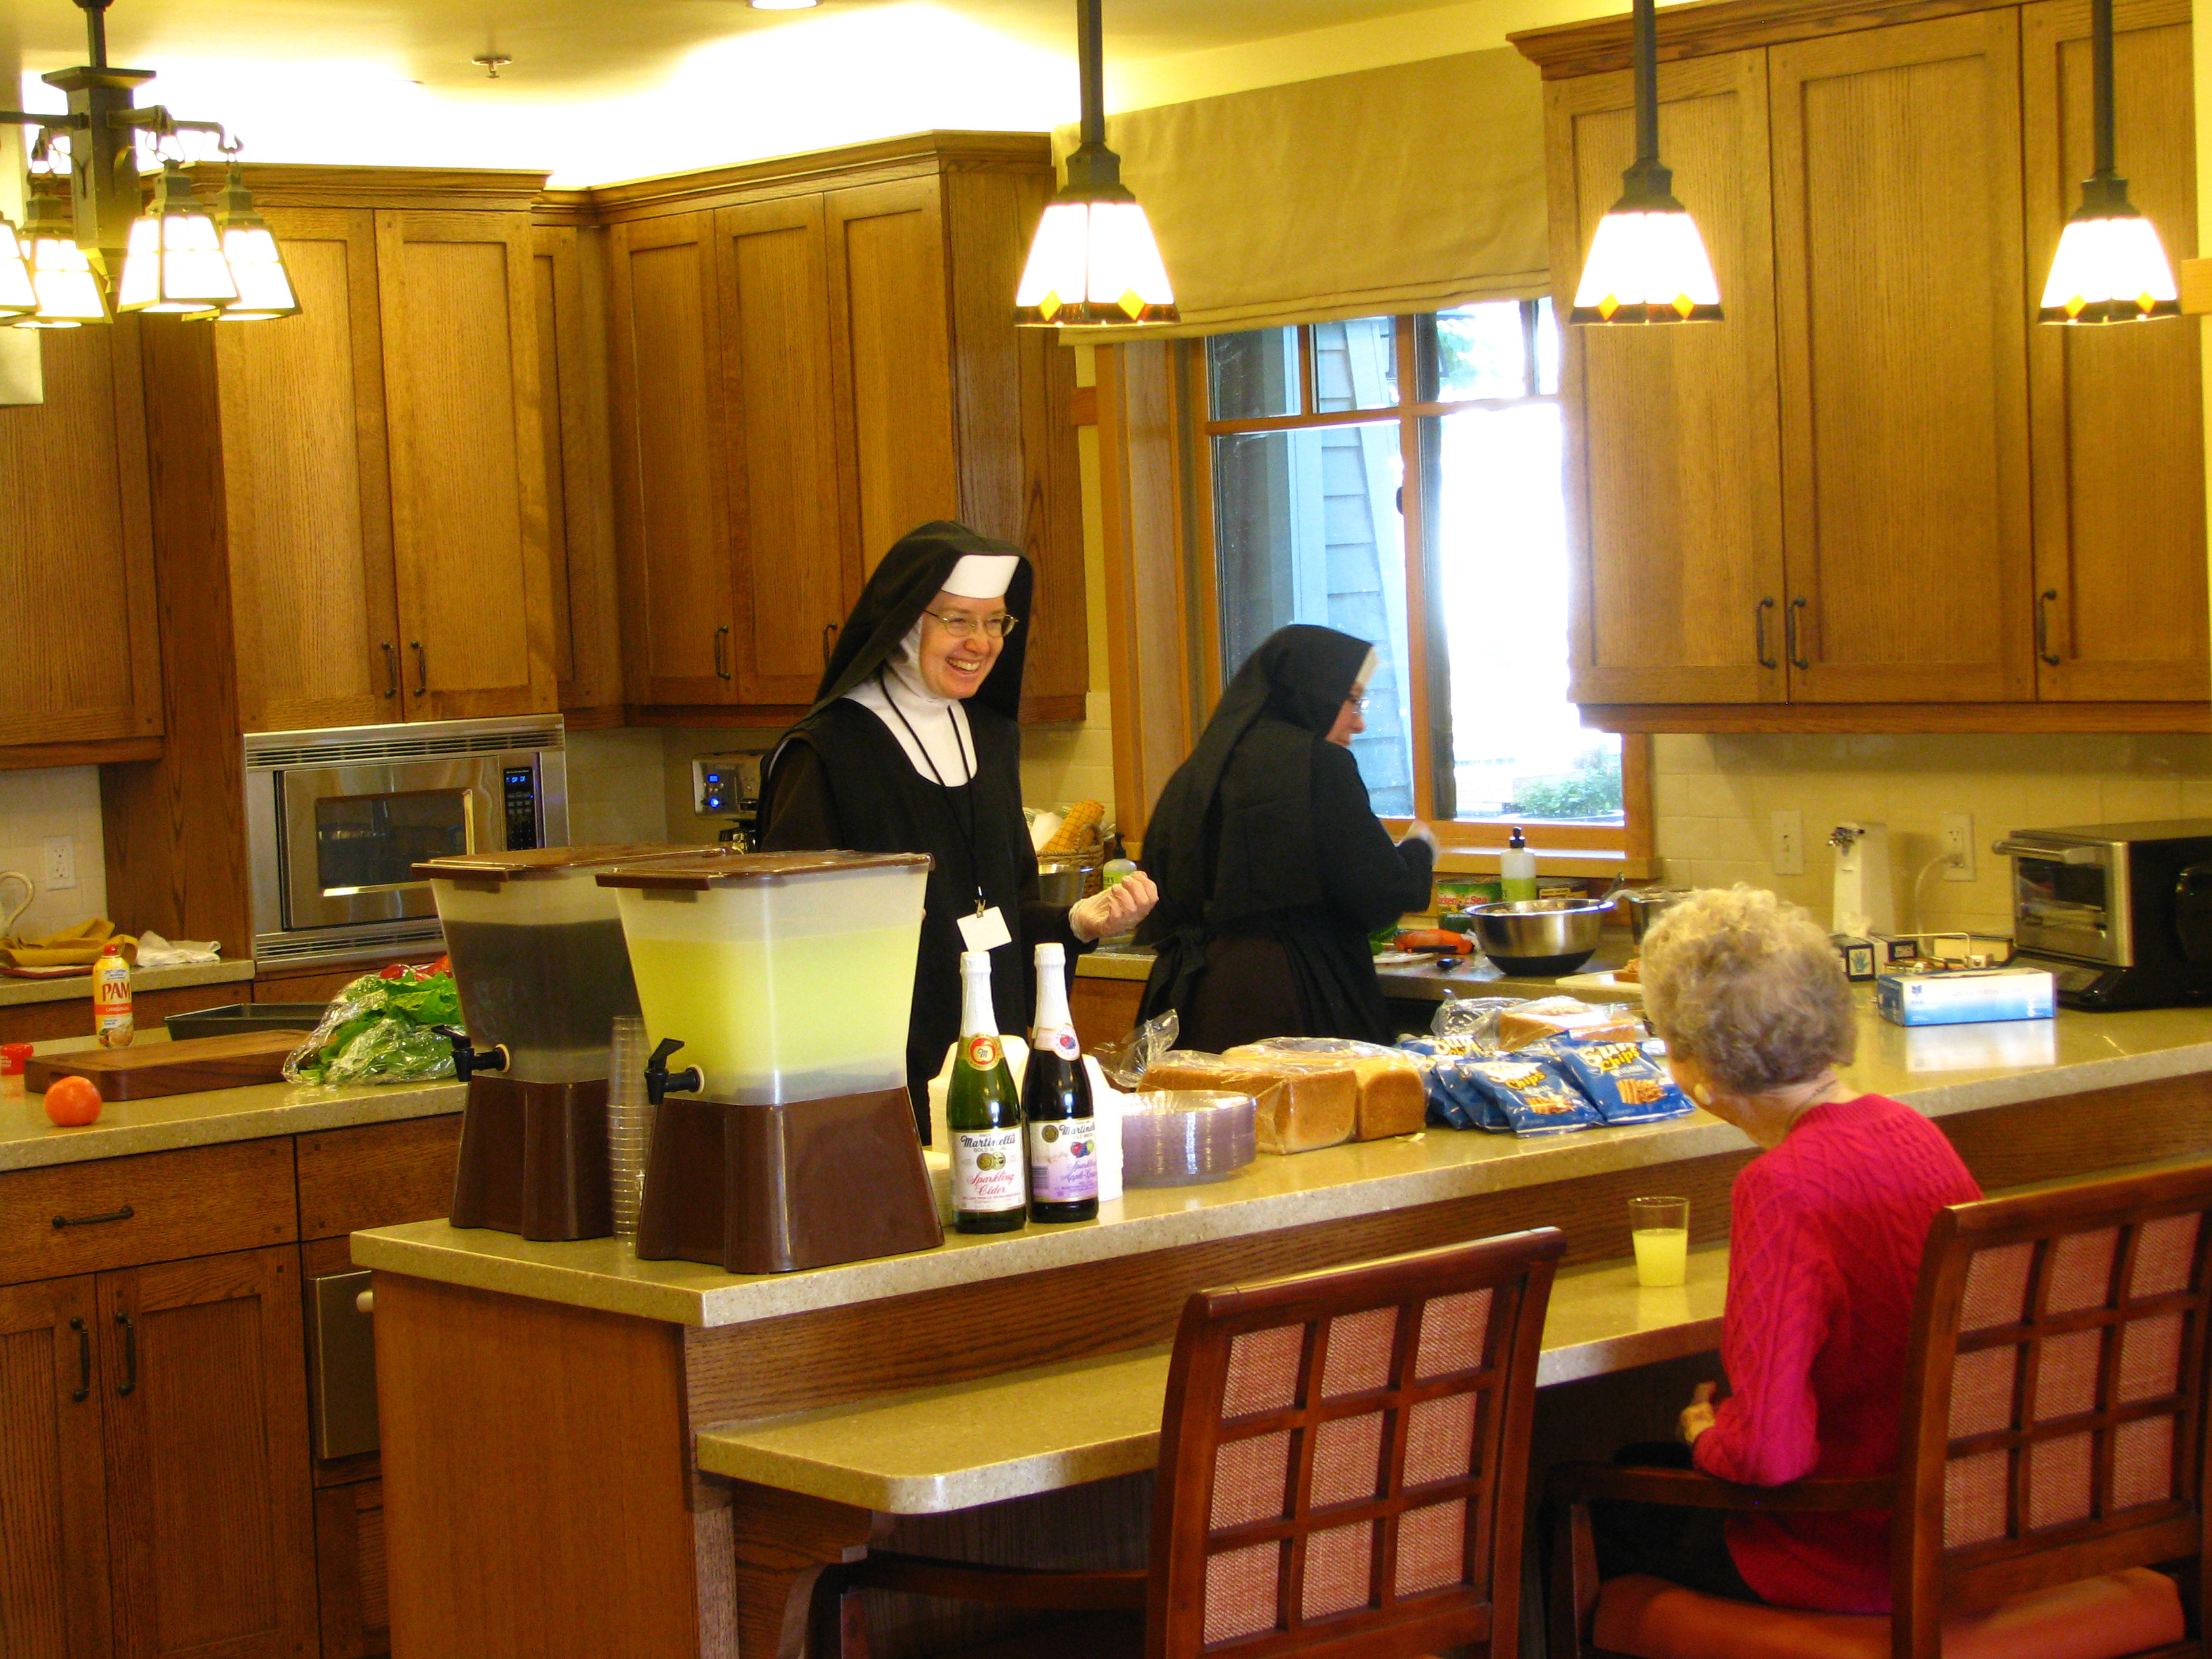 Sisters Preparing Lunch